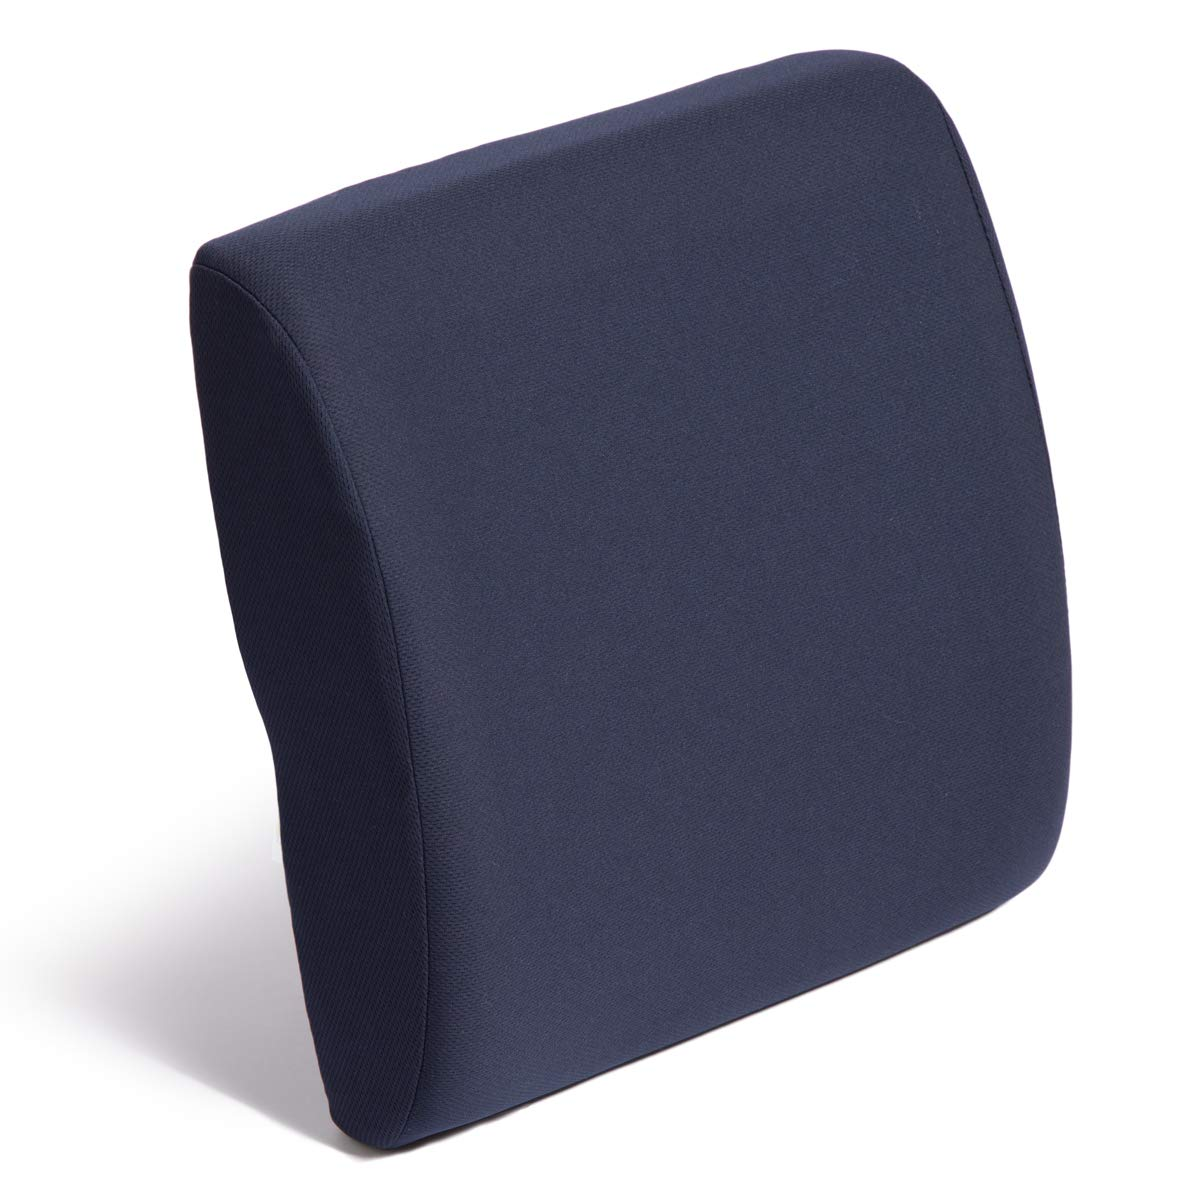 Bucketseat Lumbar Cushion with Navy Polycotton Zippered Cover & Strap Part No. LC2232NV Qty Per Case